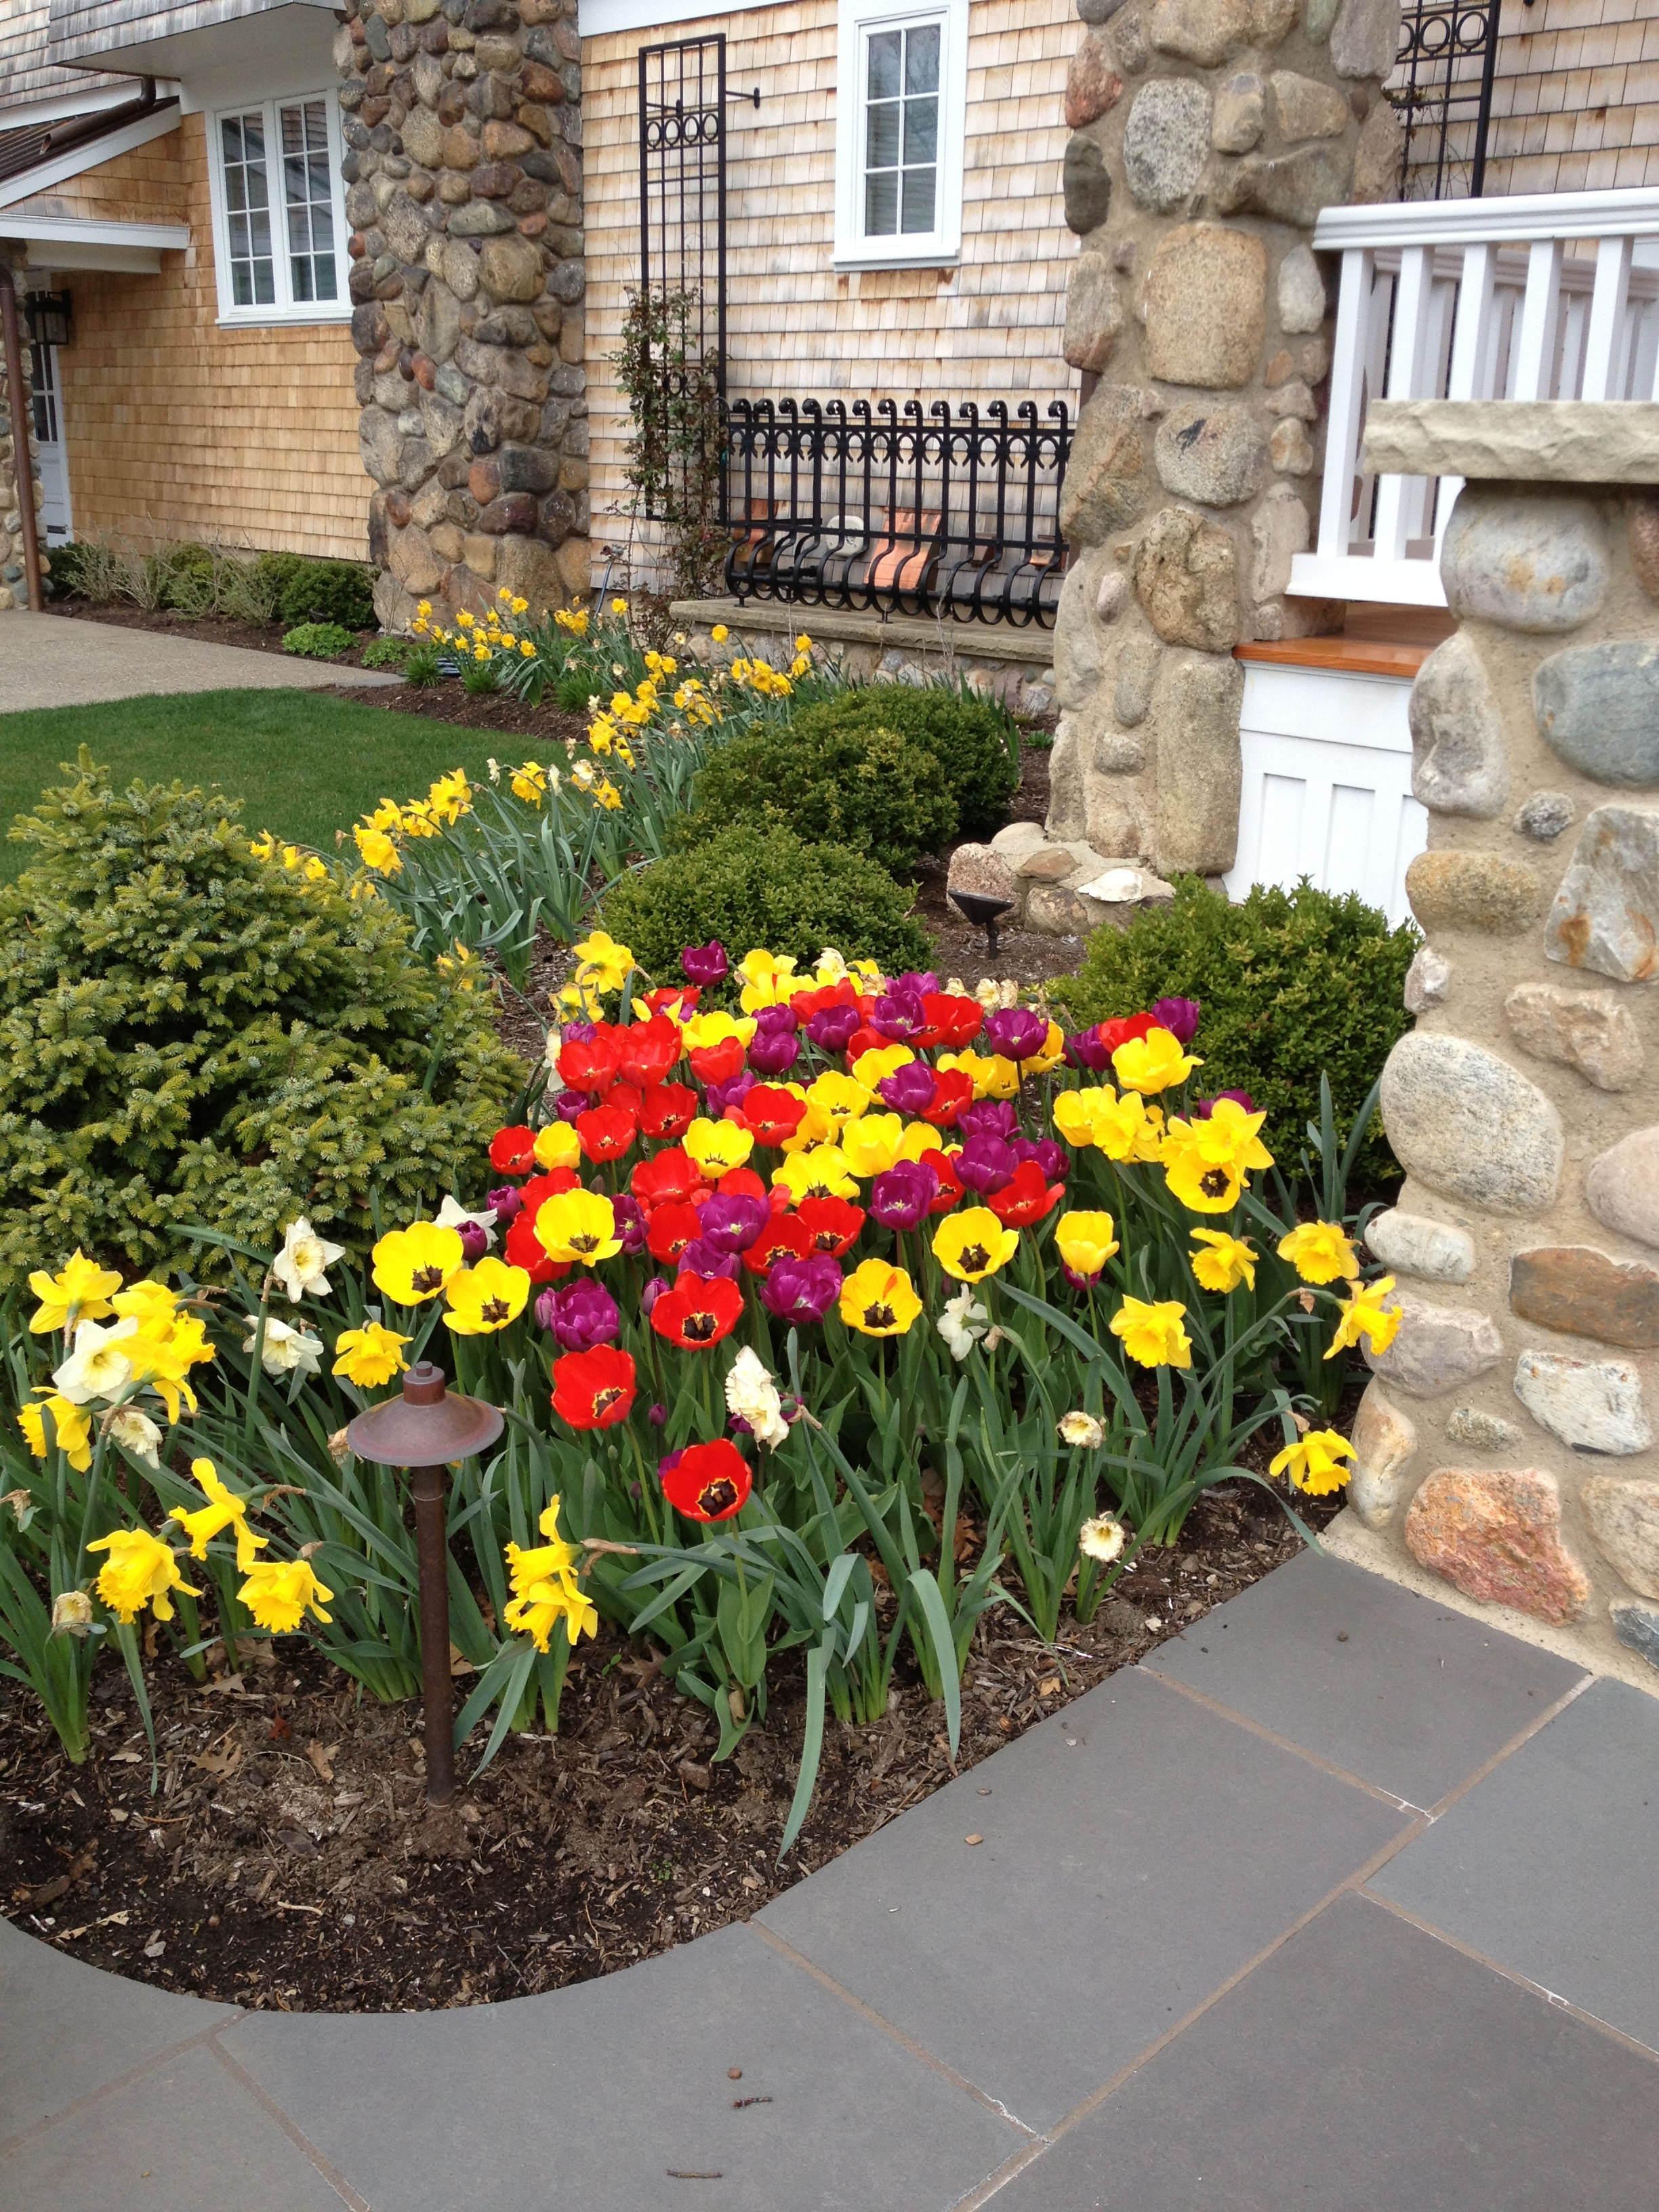 Awesome A Thorough Spring Cleanup Prepares Your Landscape For Summer. Without A  Spring Cleanup, Your Landscape Can Get Out Of Control Very Quickly.